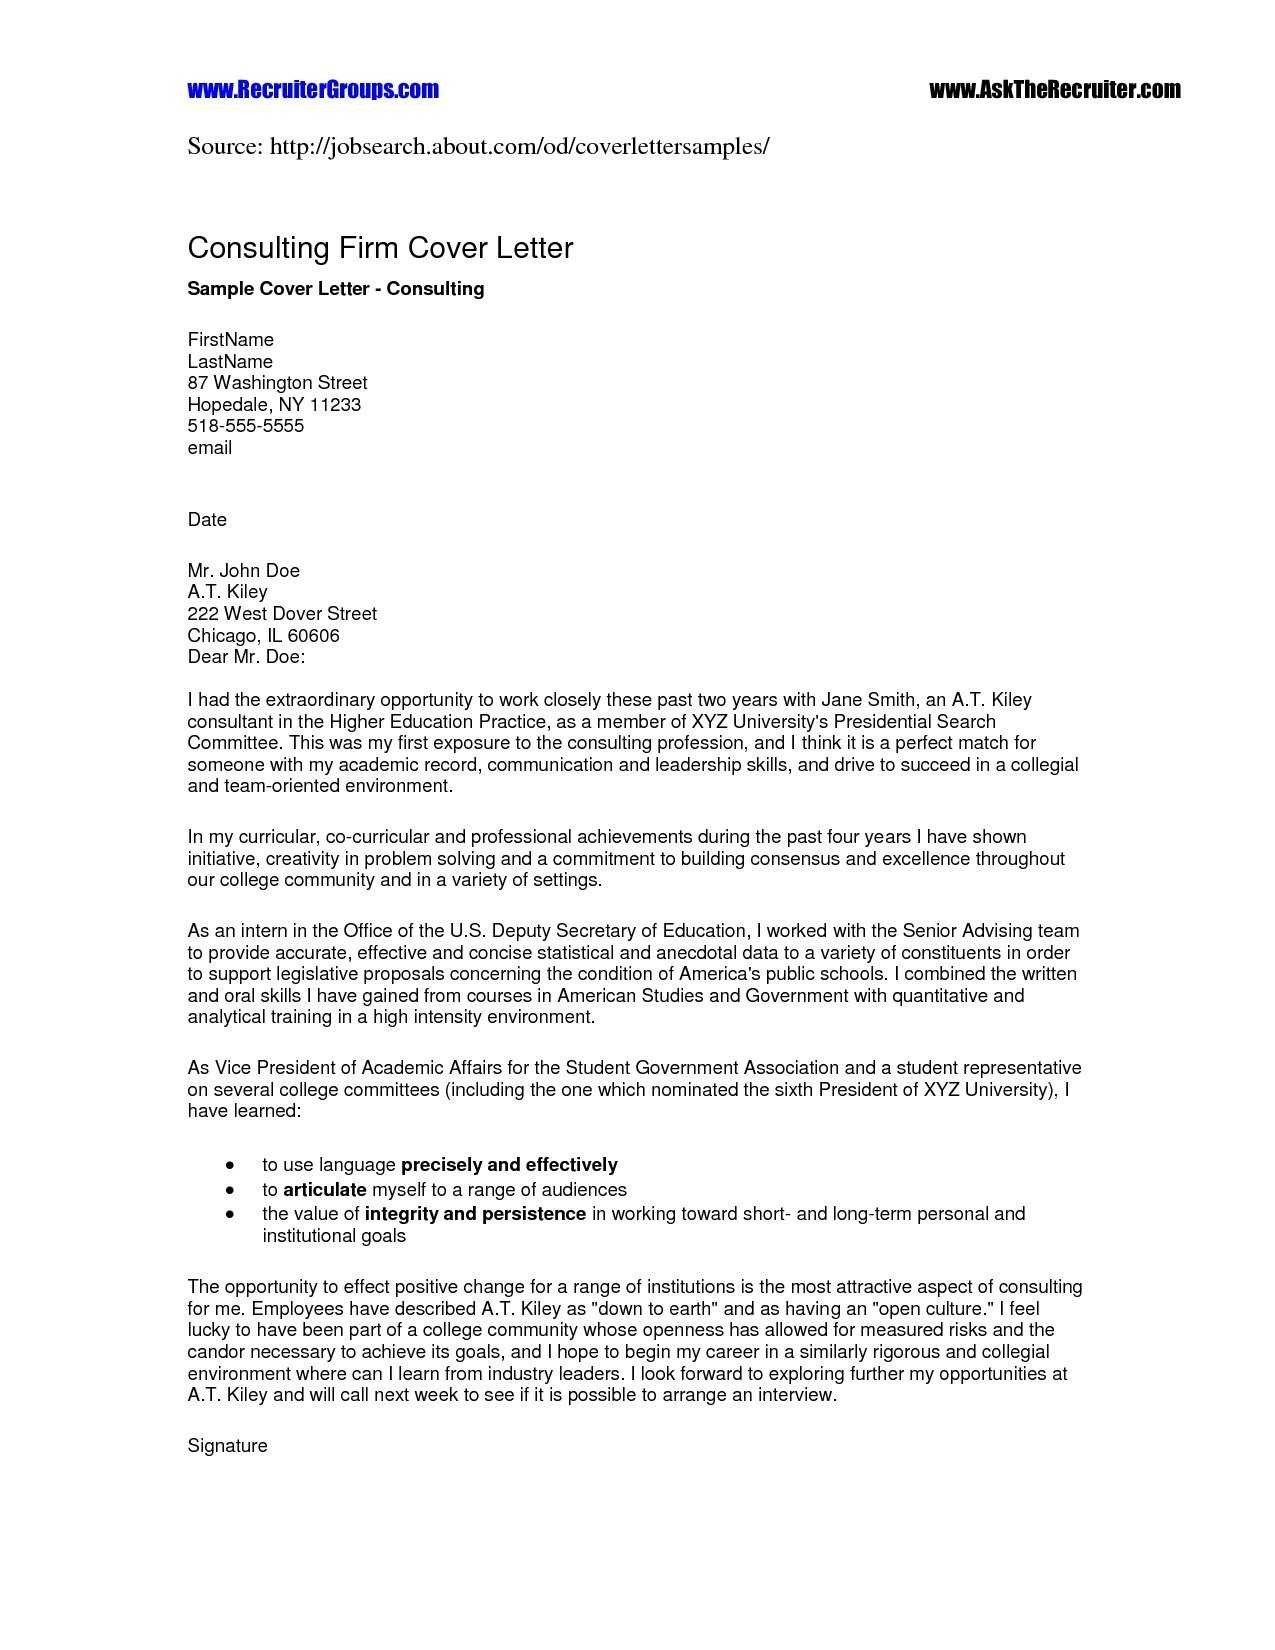 business partnership letter template Collection-Business Partnership Proposal Letter Template Fresh Partnership Term Sheet Template With Lovely Business Partnership 20-b